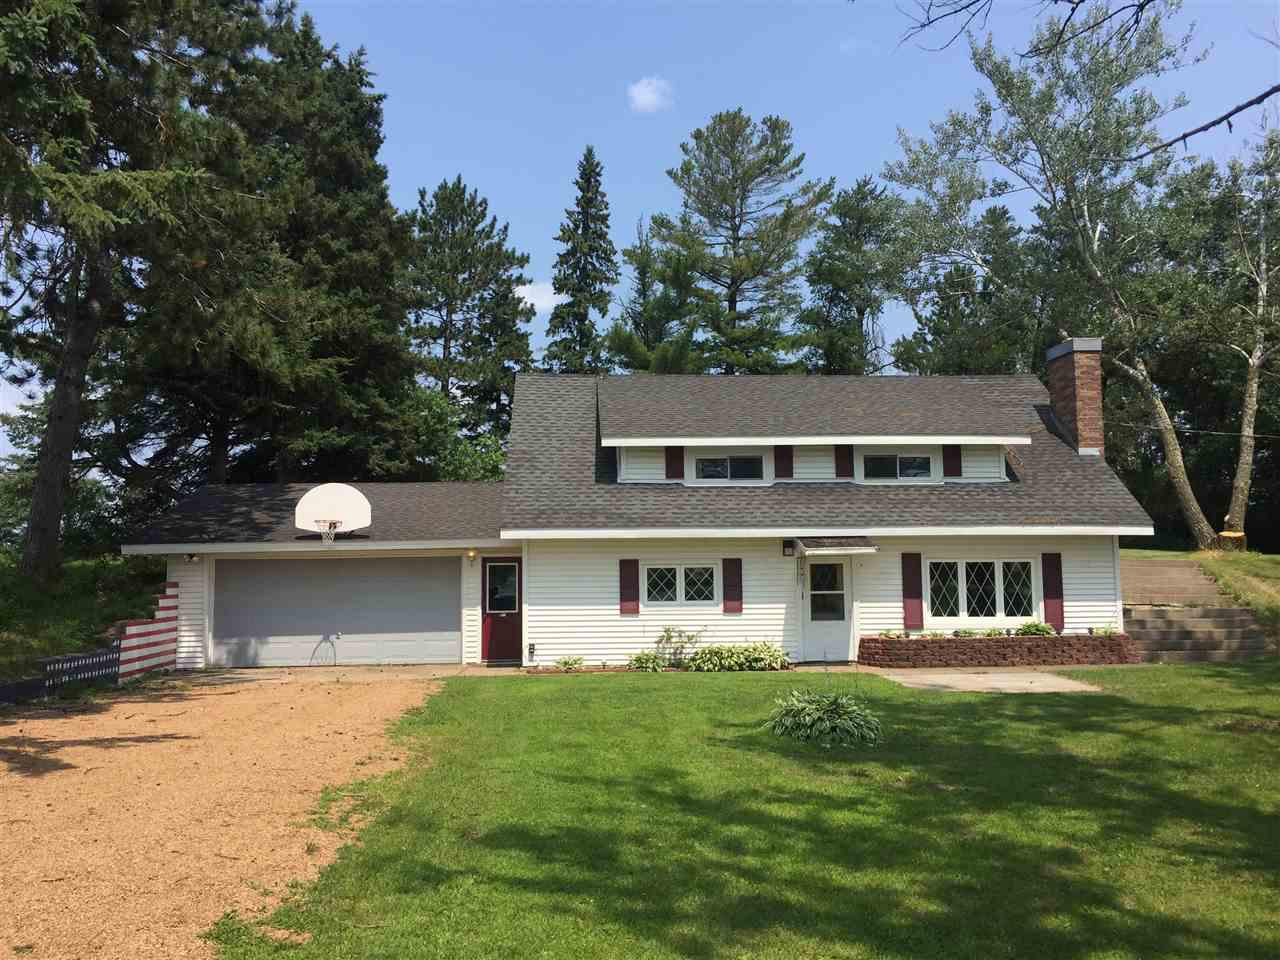 COUNTRY HOME CLOSE TO TOWN. 3 Bedroom home with 1 1/2 baths located just 2 miles from the west side of town and Antigo High School. Home's interior has been completely repainted and the laundry/garage entry/back room area and lower half bath has been newly tiled and it looks FANTASTIC! This home is situated on a beautiful one acre tree lined lot with manicured shaded lawn and flower beds. The property also has a great 54'x30' shop/steel building with a separate drive for ease of access and possible rental income for storage. The property had a new drilled well installed last year and there is an additional 14x12 steel storage shed in back. Spacious upper level bedrooms with full bath. Kitchen, living room with wood burning fireplace, laundry, and 1/2 bath on the main level. Call today to see this great country living opportunity